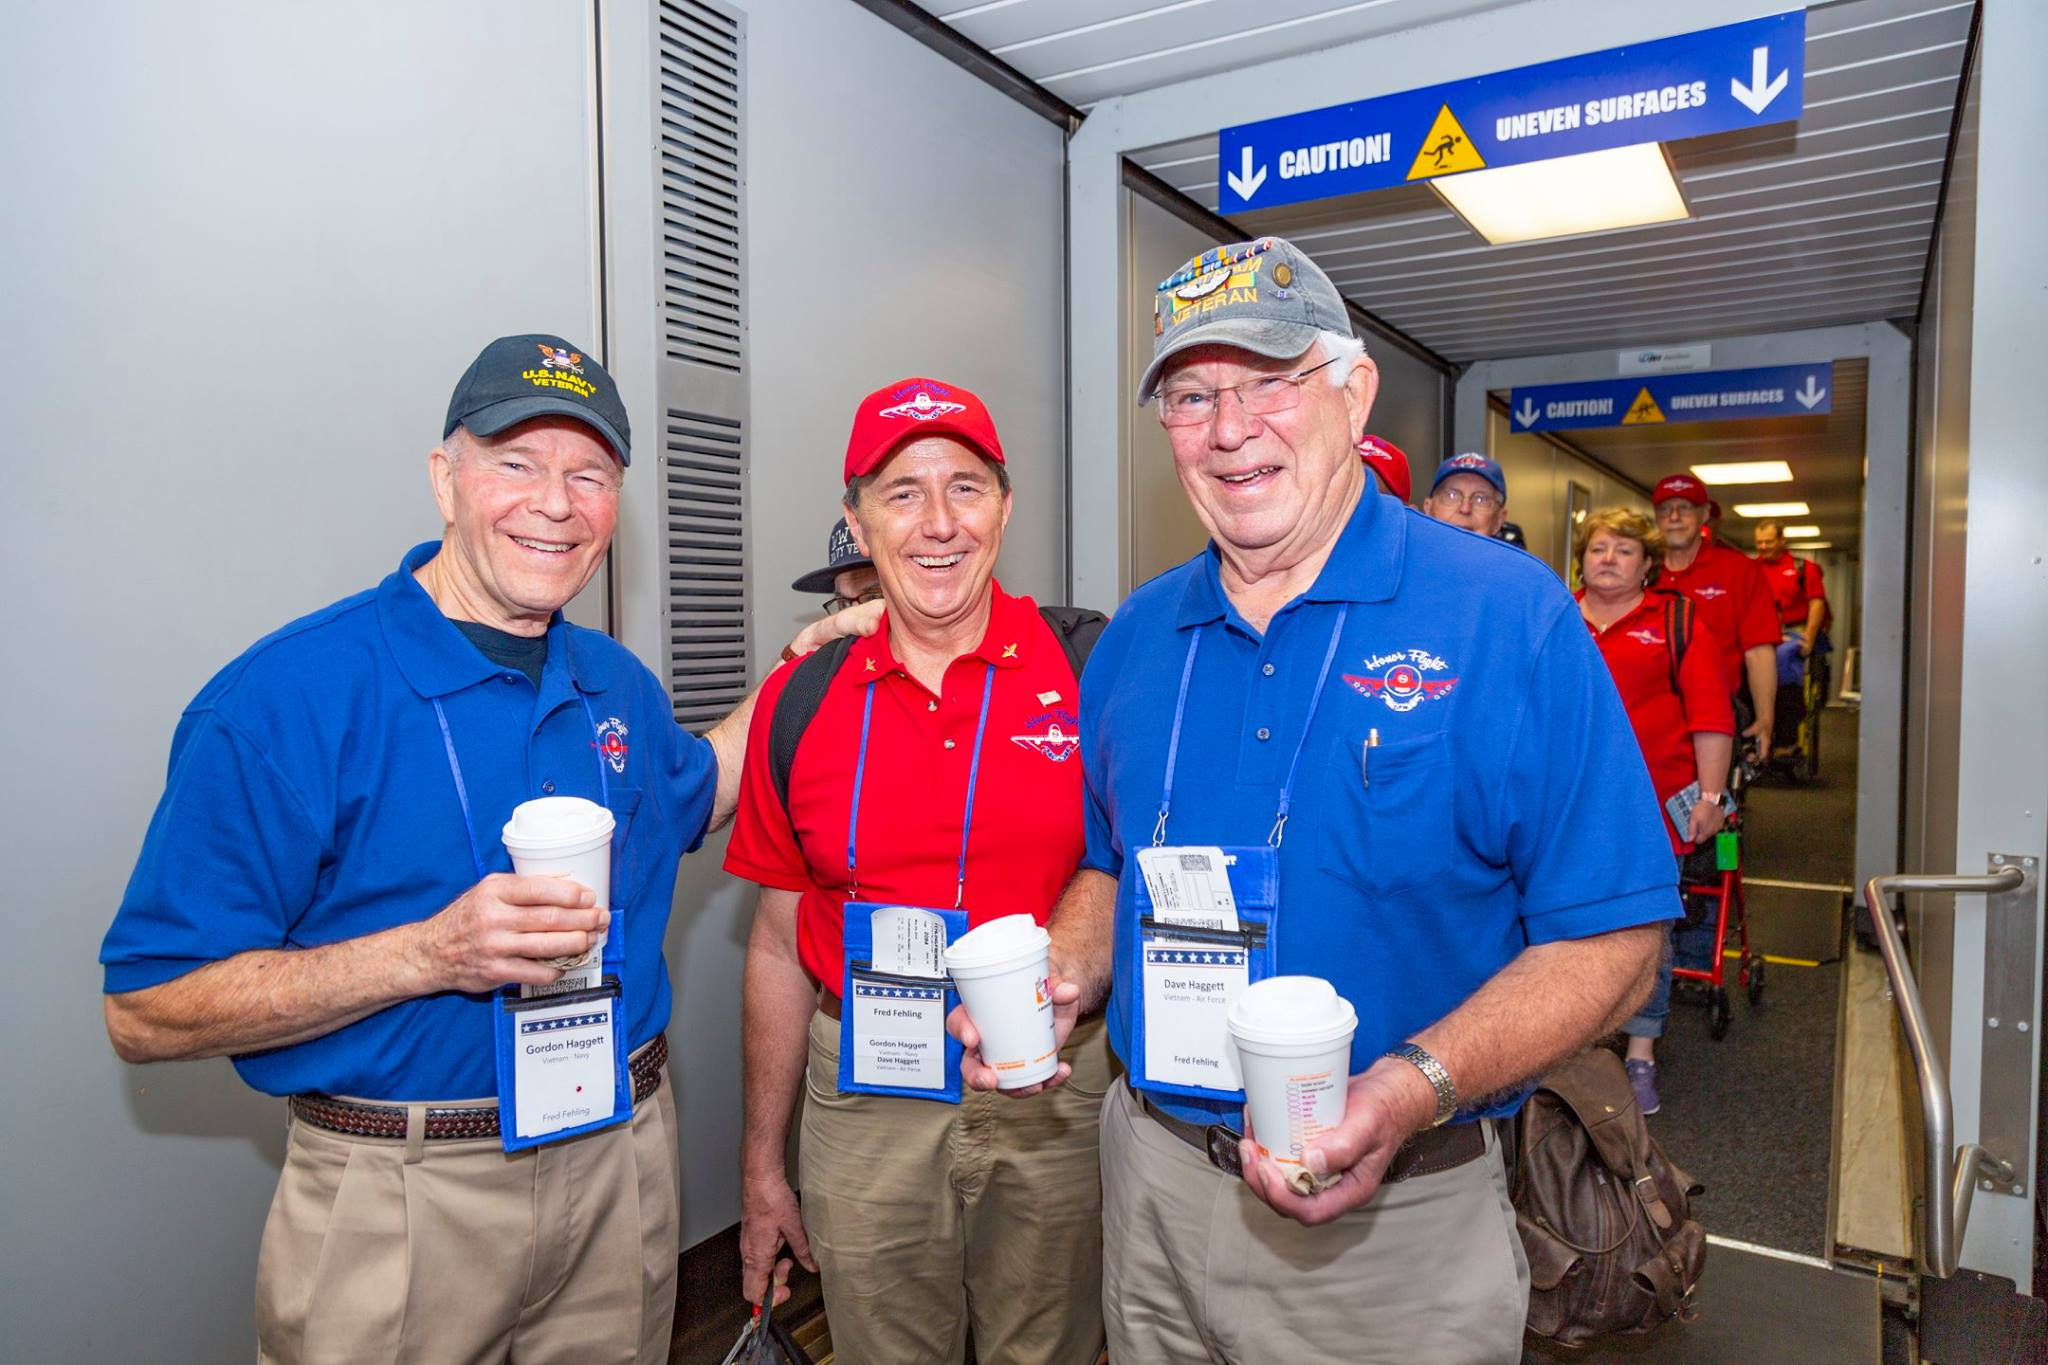 Honor Flight DFW 8th Annual Golf Classic gallery image #20